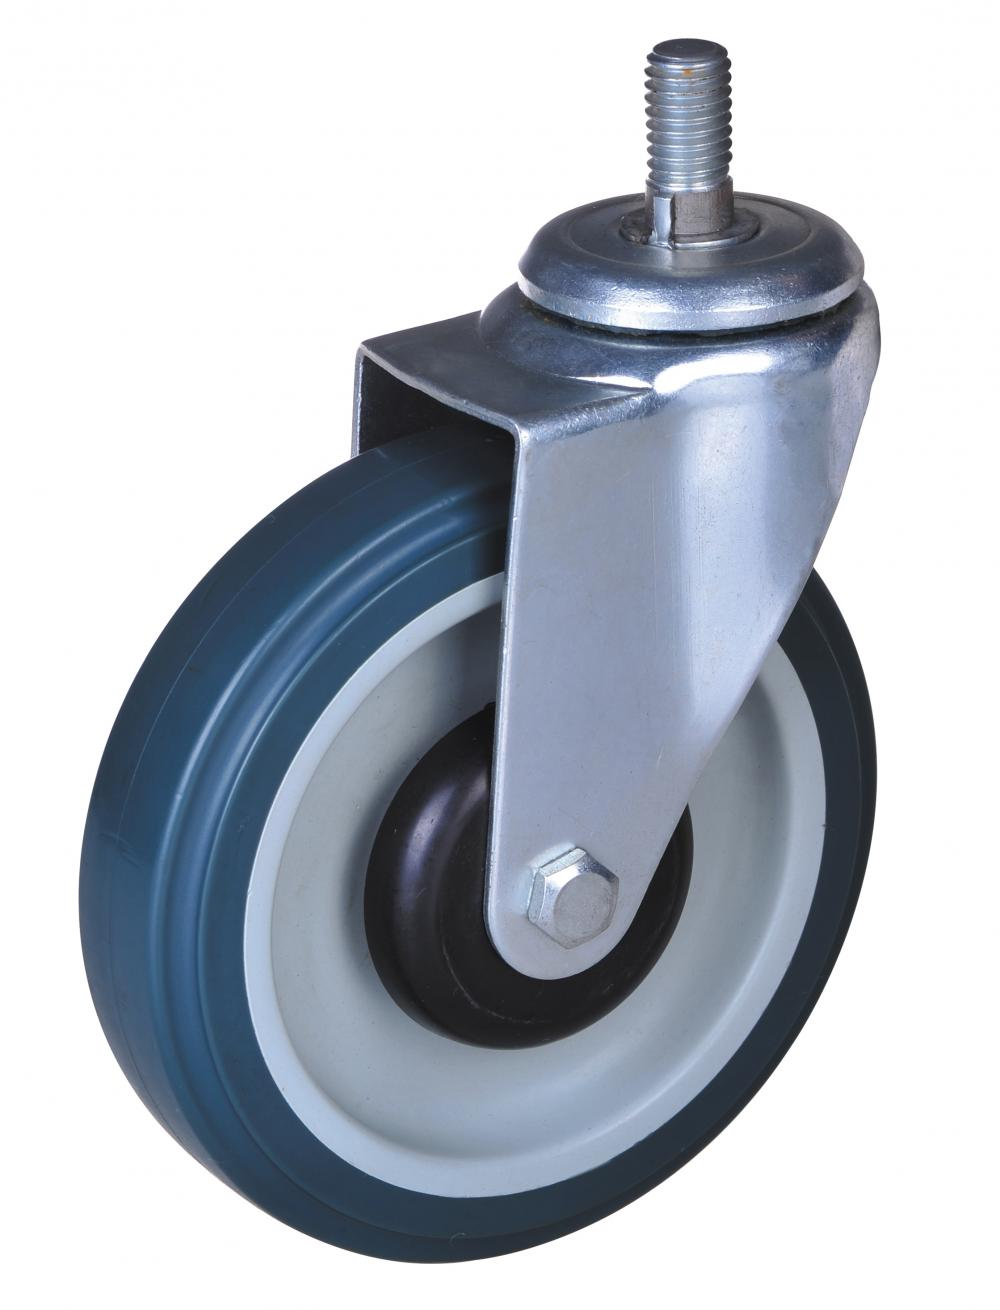 5-tums PP / TPE-hiss Swivel Caster